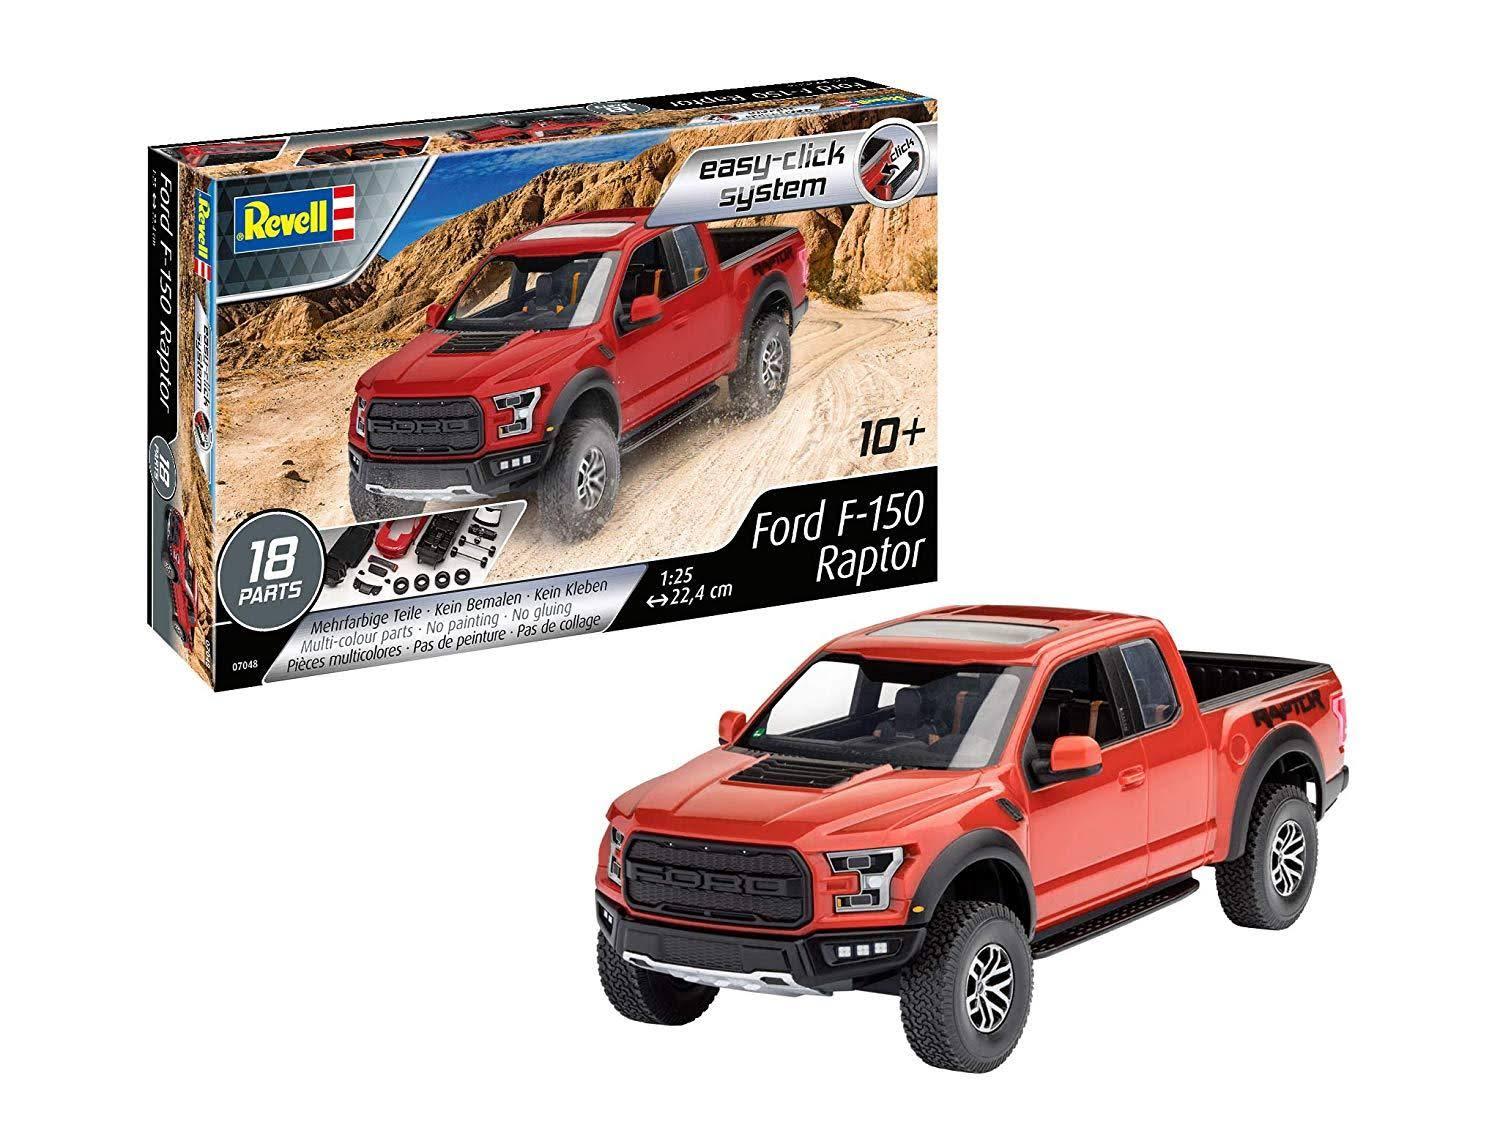 Revell 7048 2017 Ford F-150 Raptor Plastic Model Kit - 1:25 Scale